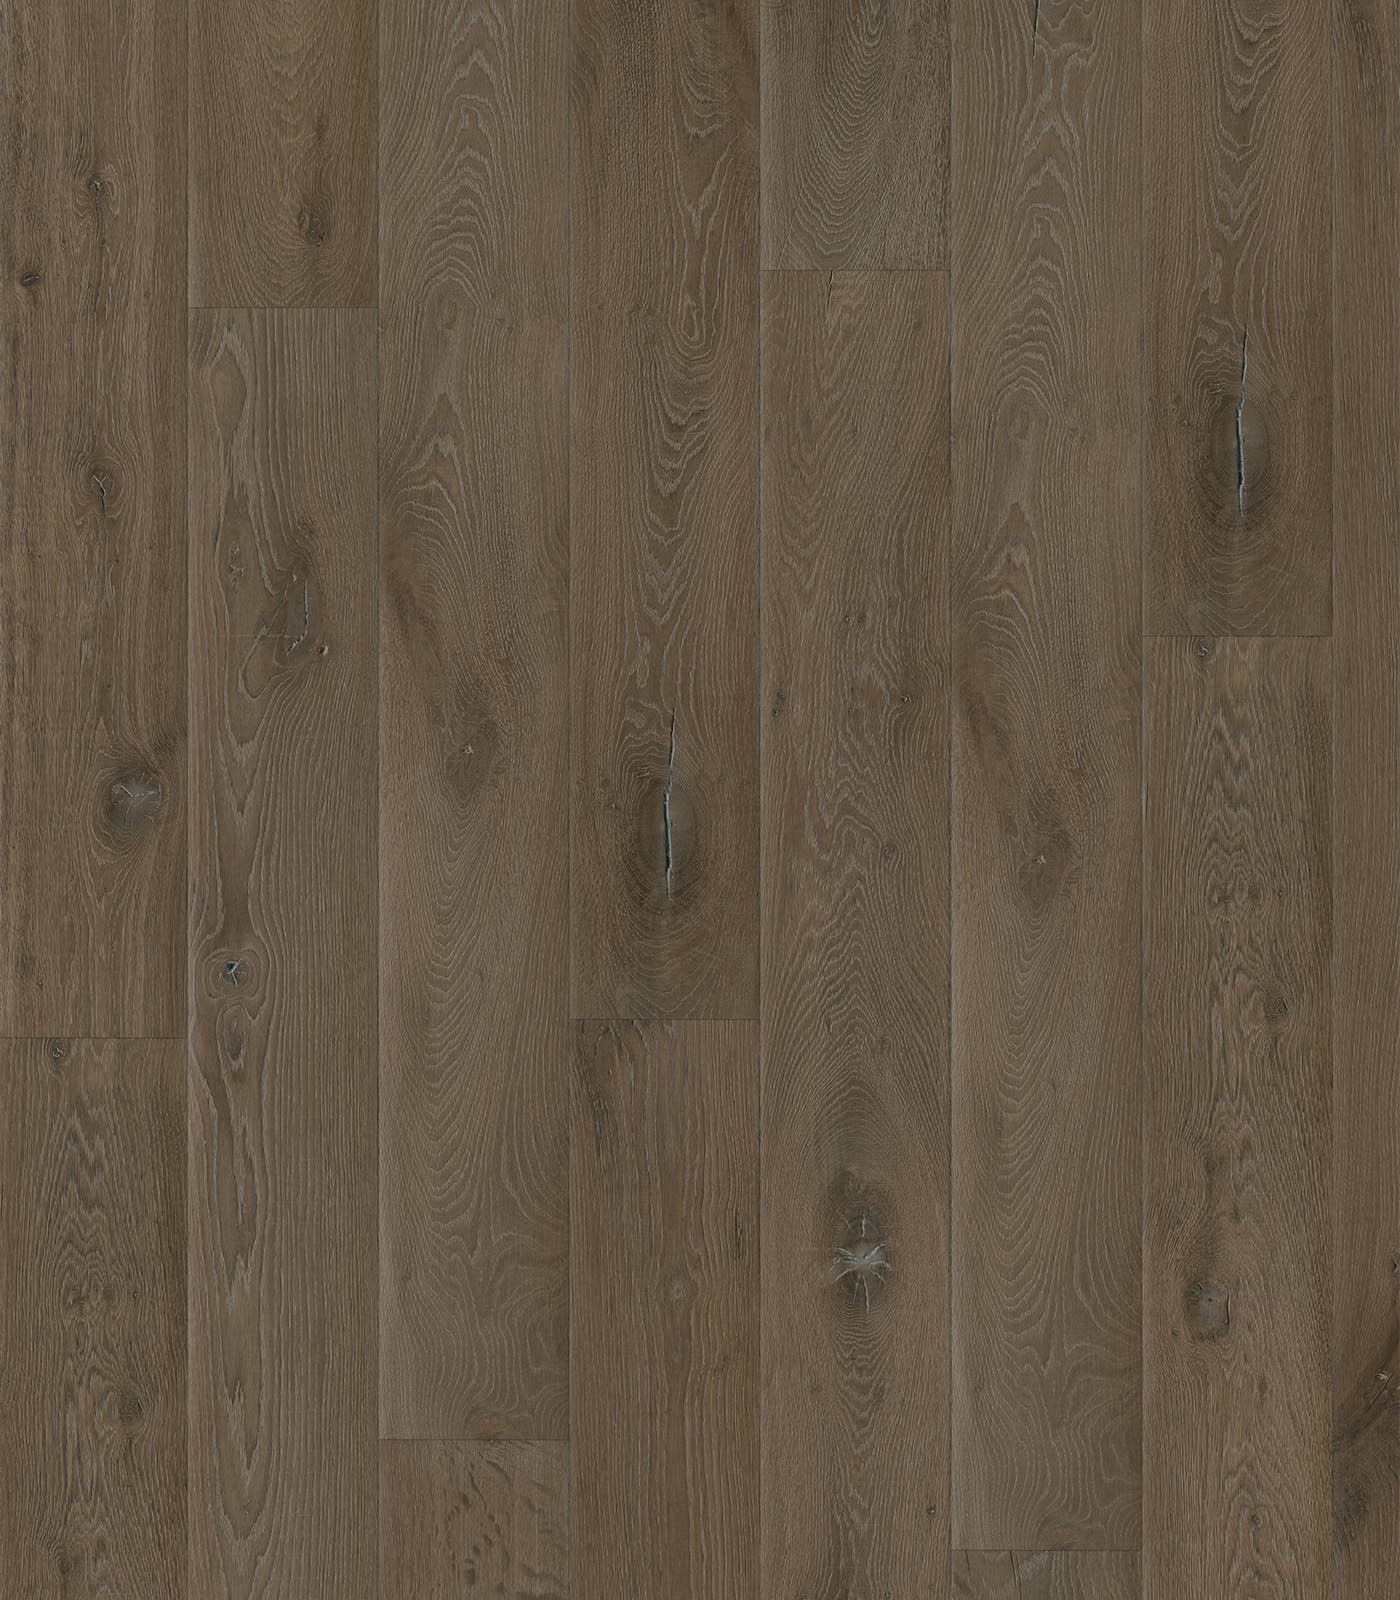 Tivoli-Heritage Collection-European Oak floors-flat